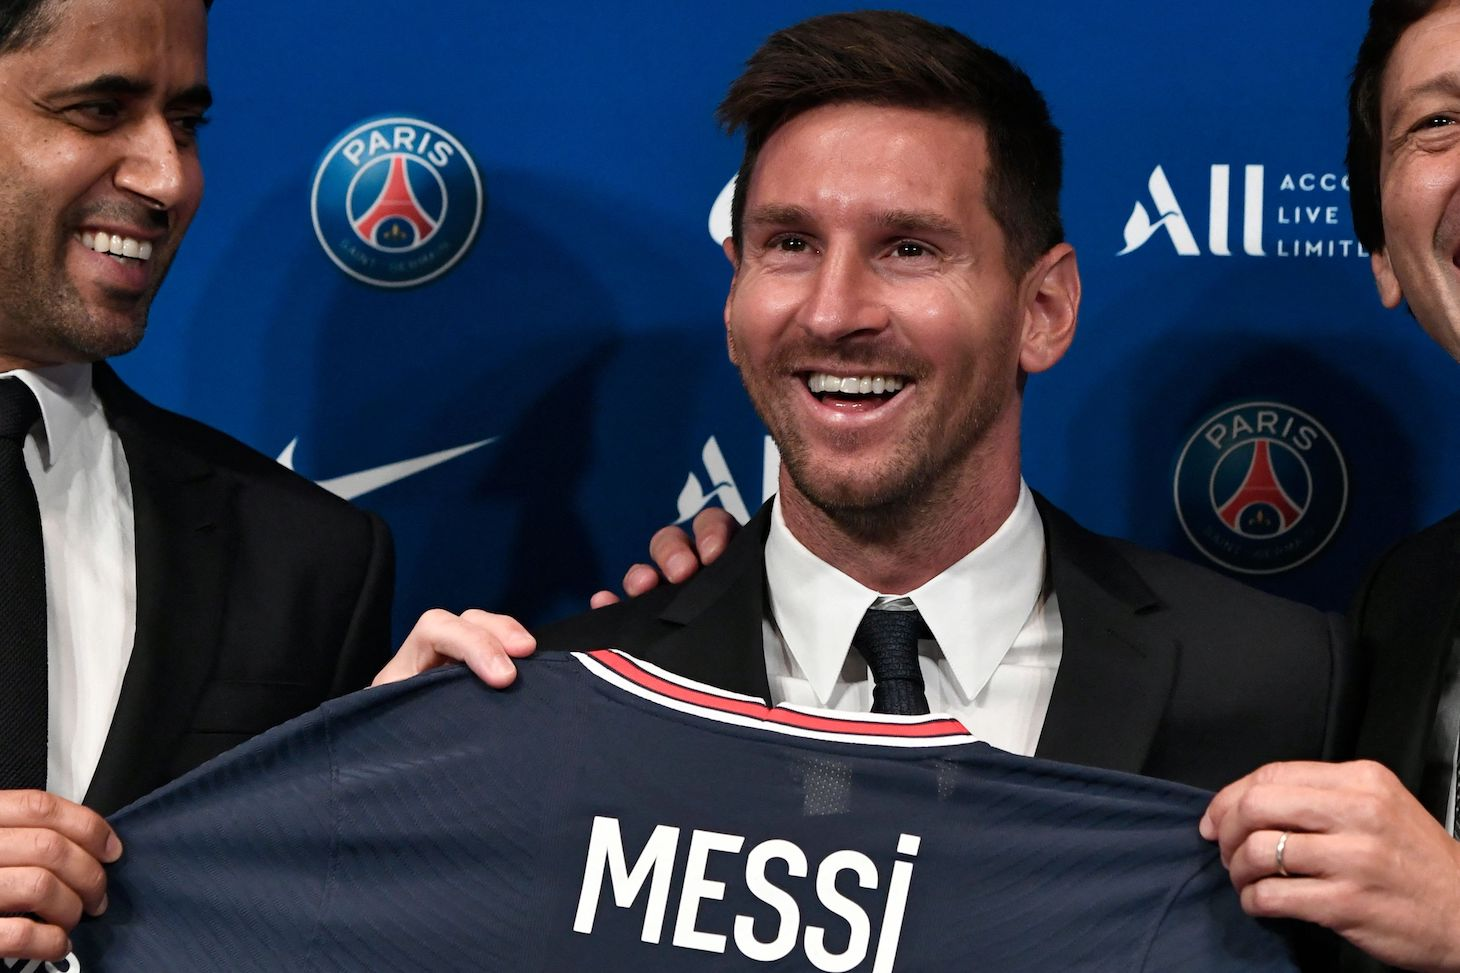 Paris Saint-Germain's Qatari President Nasser Al-Khelaifi (L) and Paris Saint-Germain's Sporting Director Leonardo Nascimento de Araujo (R) pose along side Argentinian football player Lionel Messi (C) as he holds-up his number 30 shirt during a press conference at the French football club Paris Saint-Germain's (PSG) Parc des Princes stadium in Paris on August 11, 2021. - The 34-year-old superstar signed a two-year deal with PSG on August 10, 2021, with the option of an additional year, he will wear the number 30 in Paris, the number he had when he began his professional career at Spain's Barca football club.